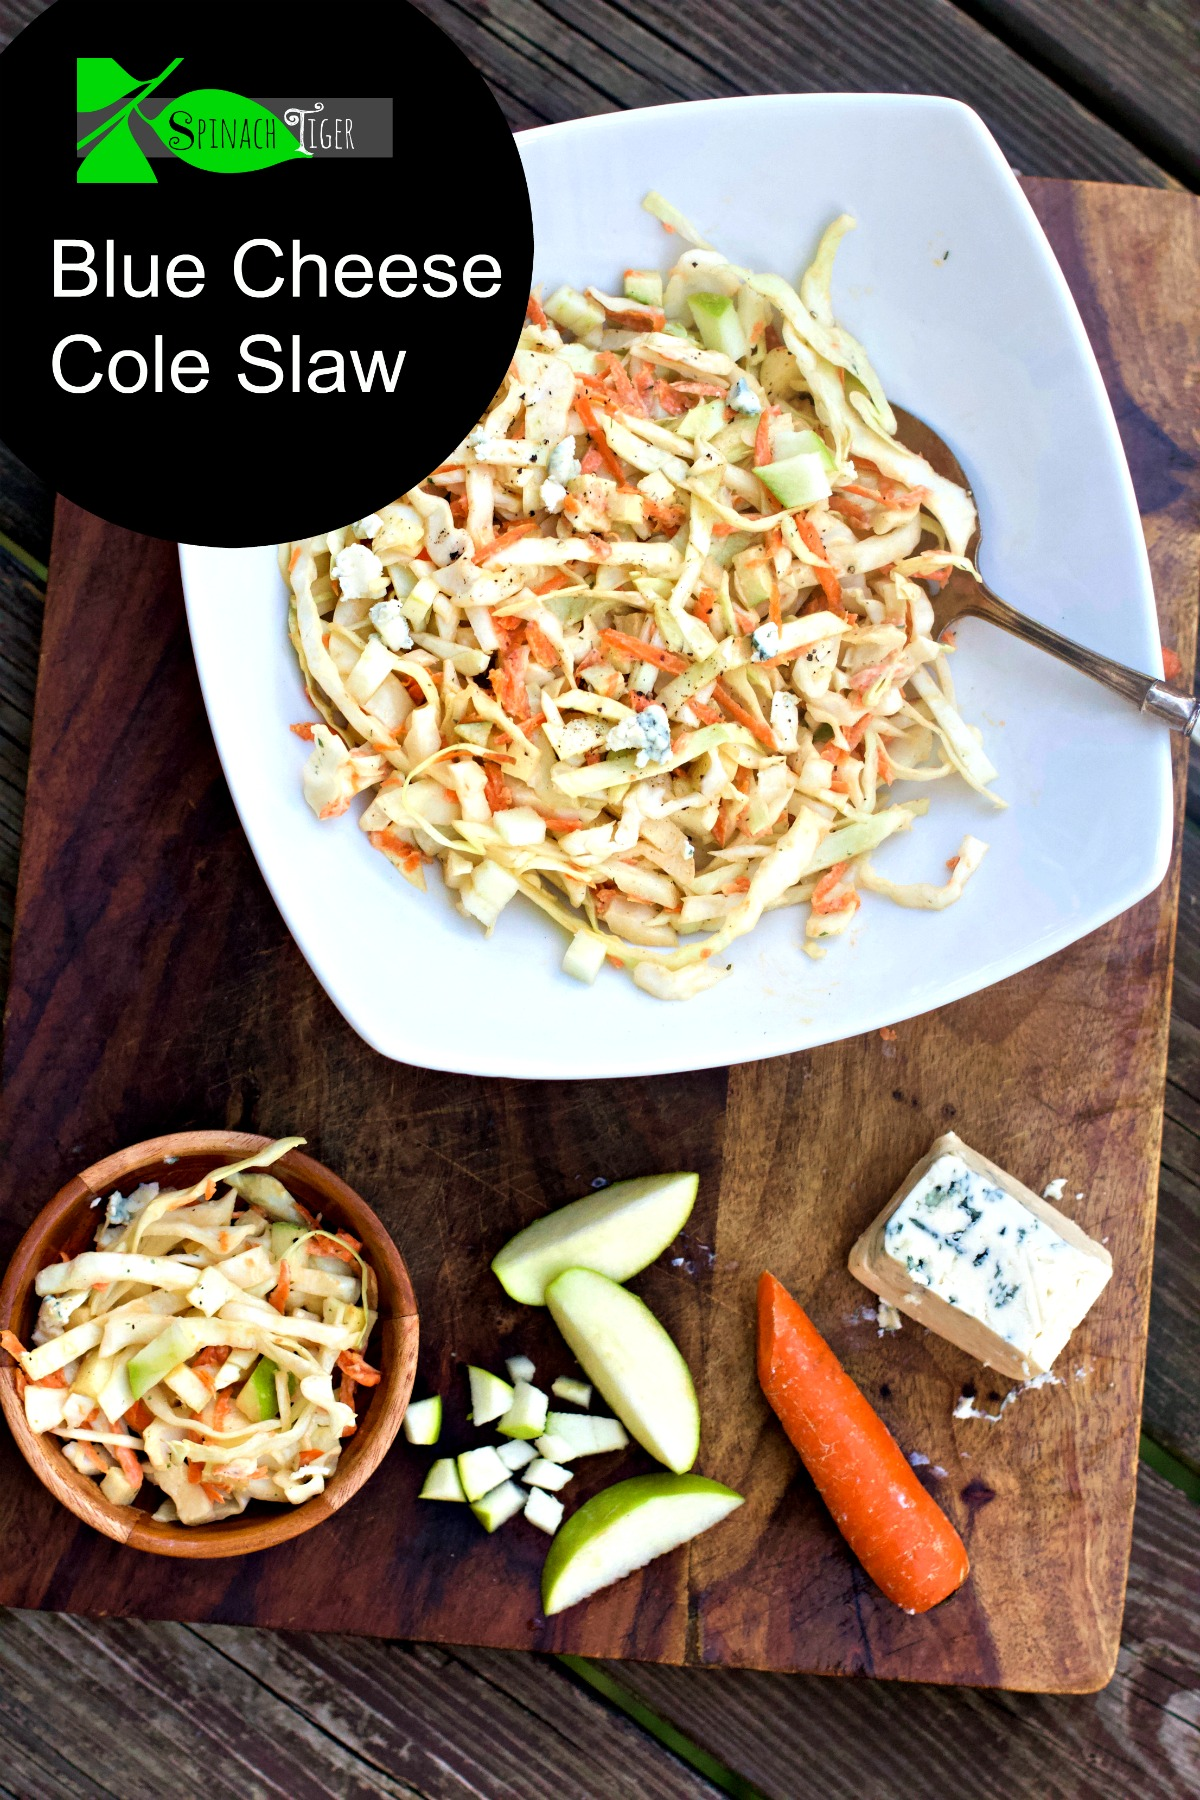 Blue Cheese Cole Slaw with Seven Tips for Making Cole Slaw. Perfect for any meat or fish dish. #coleslaw #bluecheese #spinachtiger via @angelaroberts